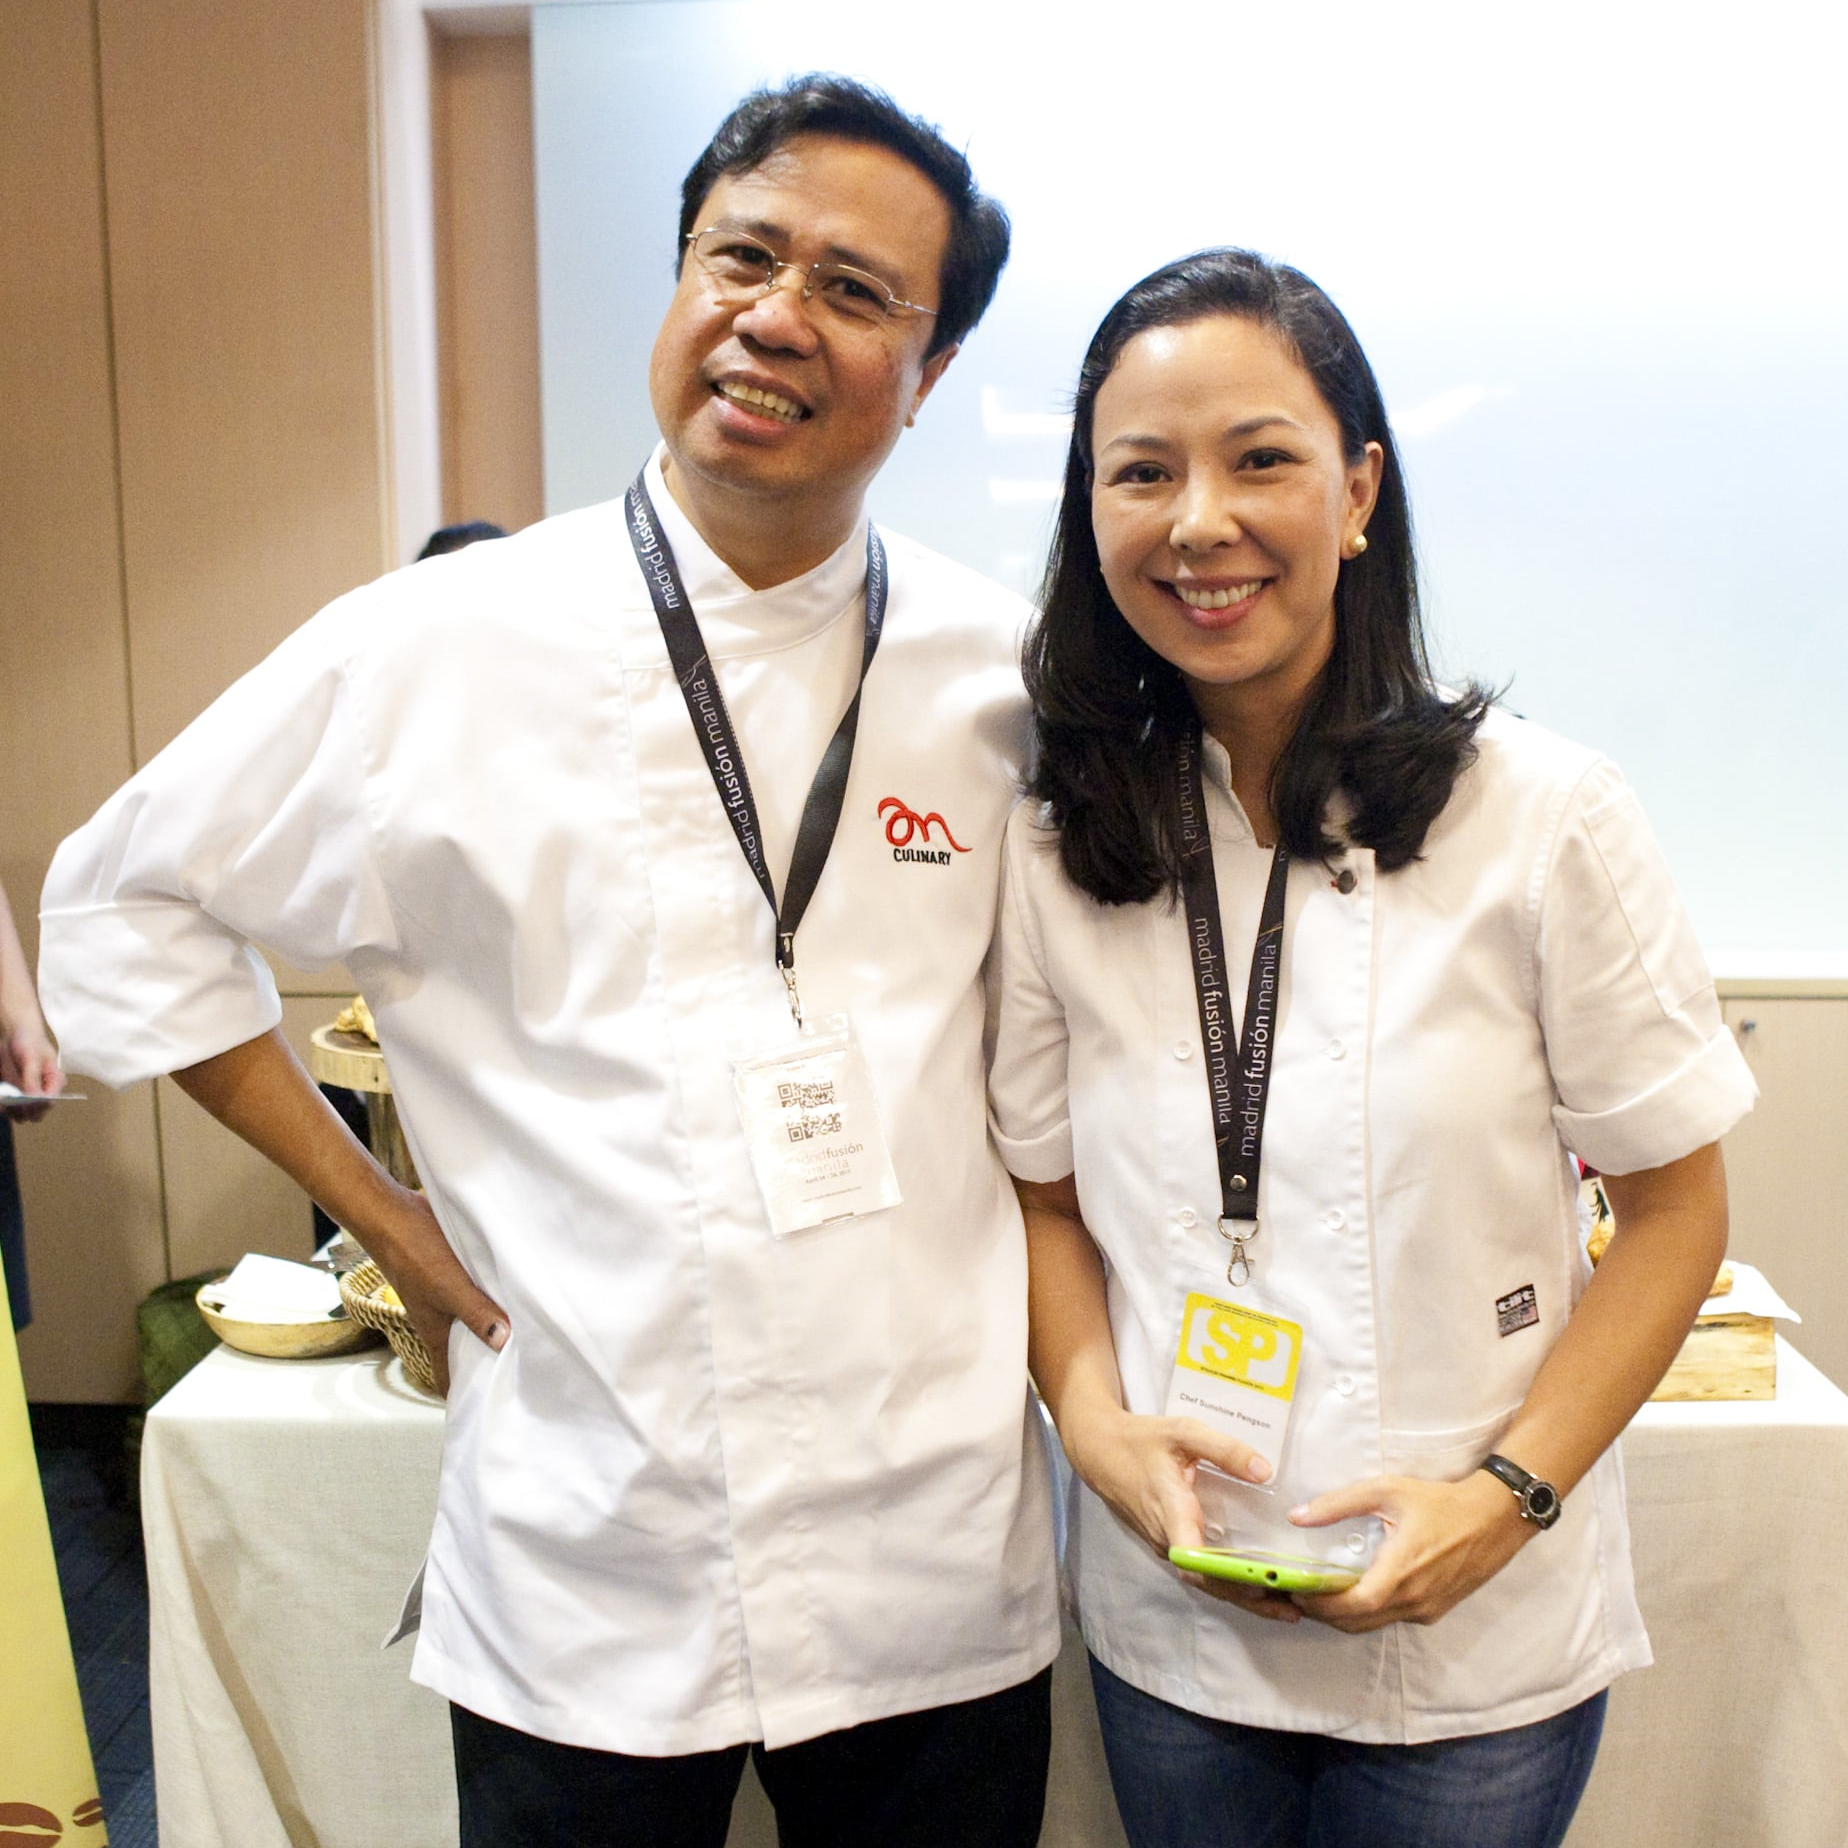 Chef Ariel Manuel together with another favorite Chef Sunshine Puey Pengson. Taken during Madrid Fusion Manila 2015 where they showcased their food for the Visayan Regional lunch.